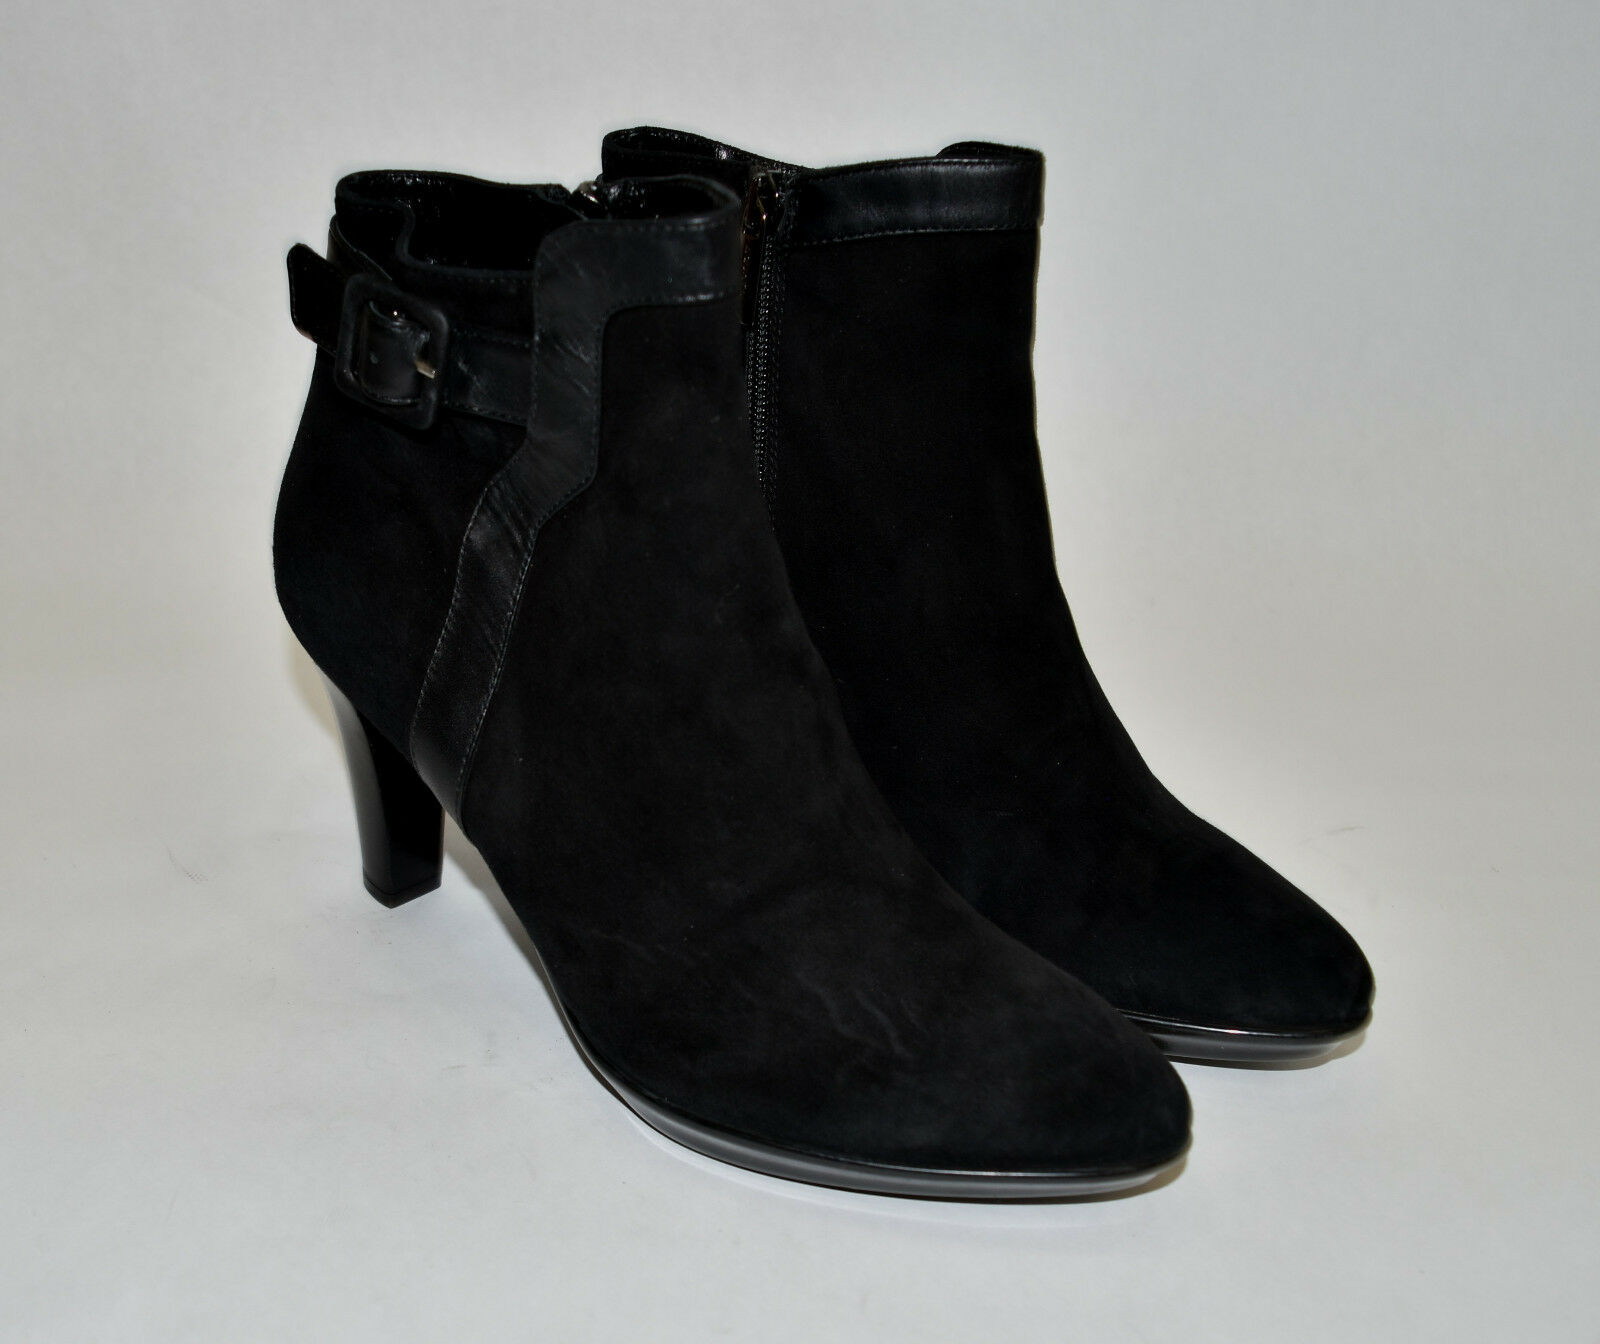 New! Aquatalia by Marvin K 'Rae' Bootie  Black Suede Size 10M